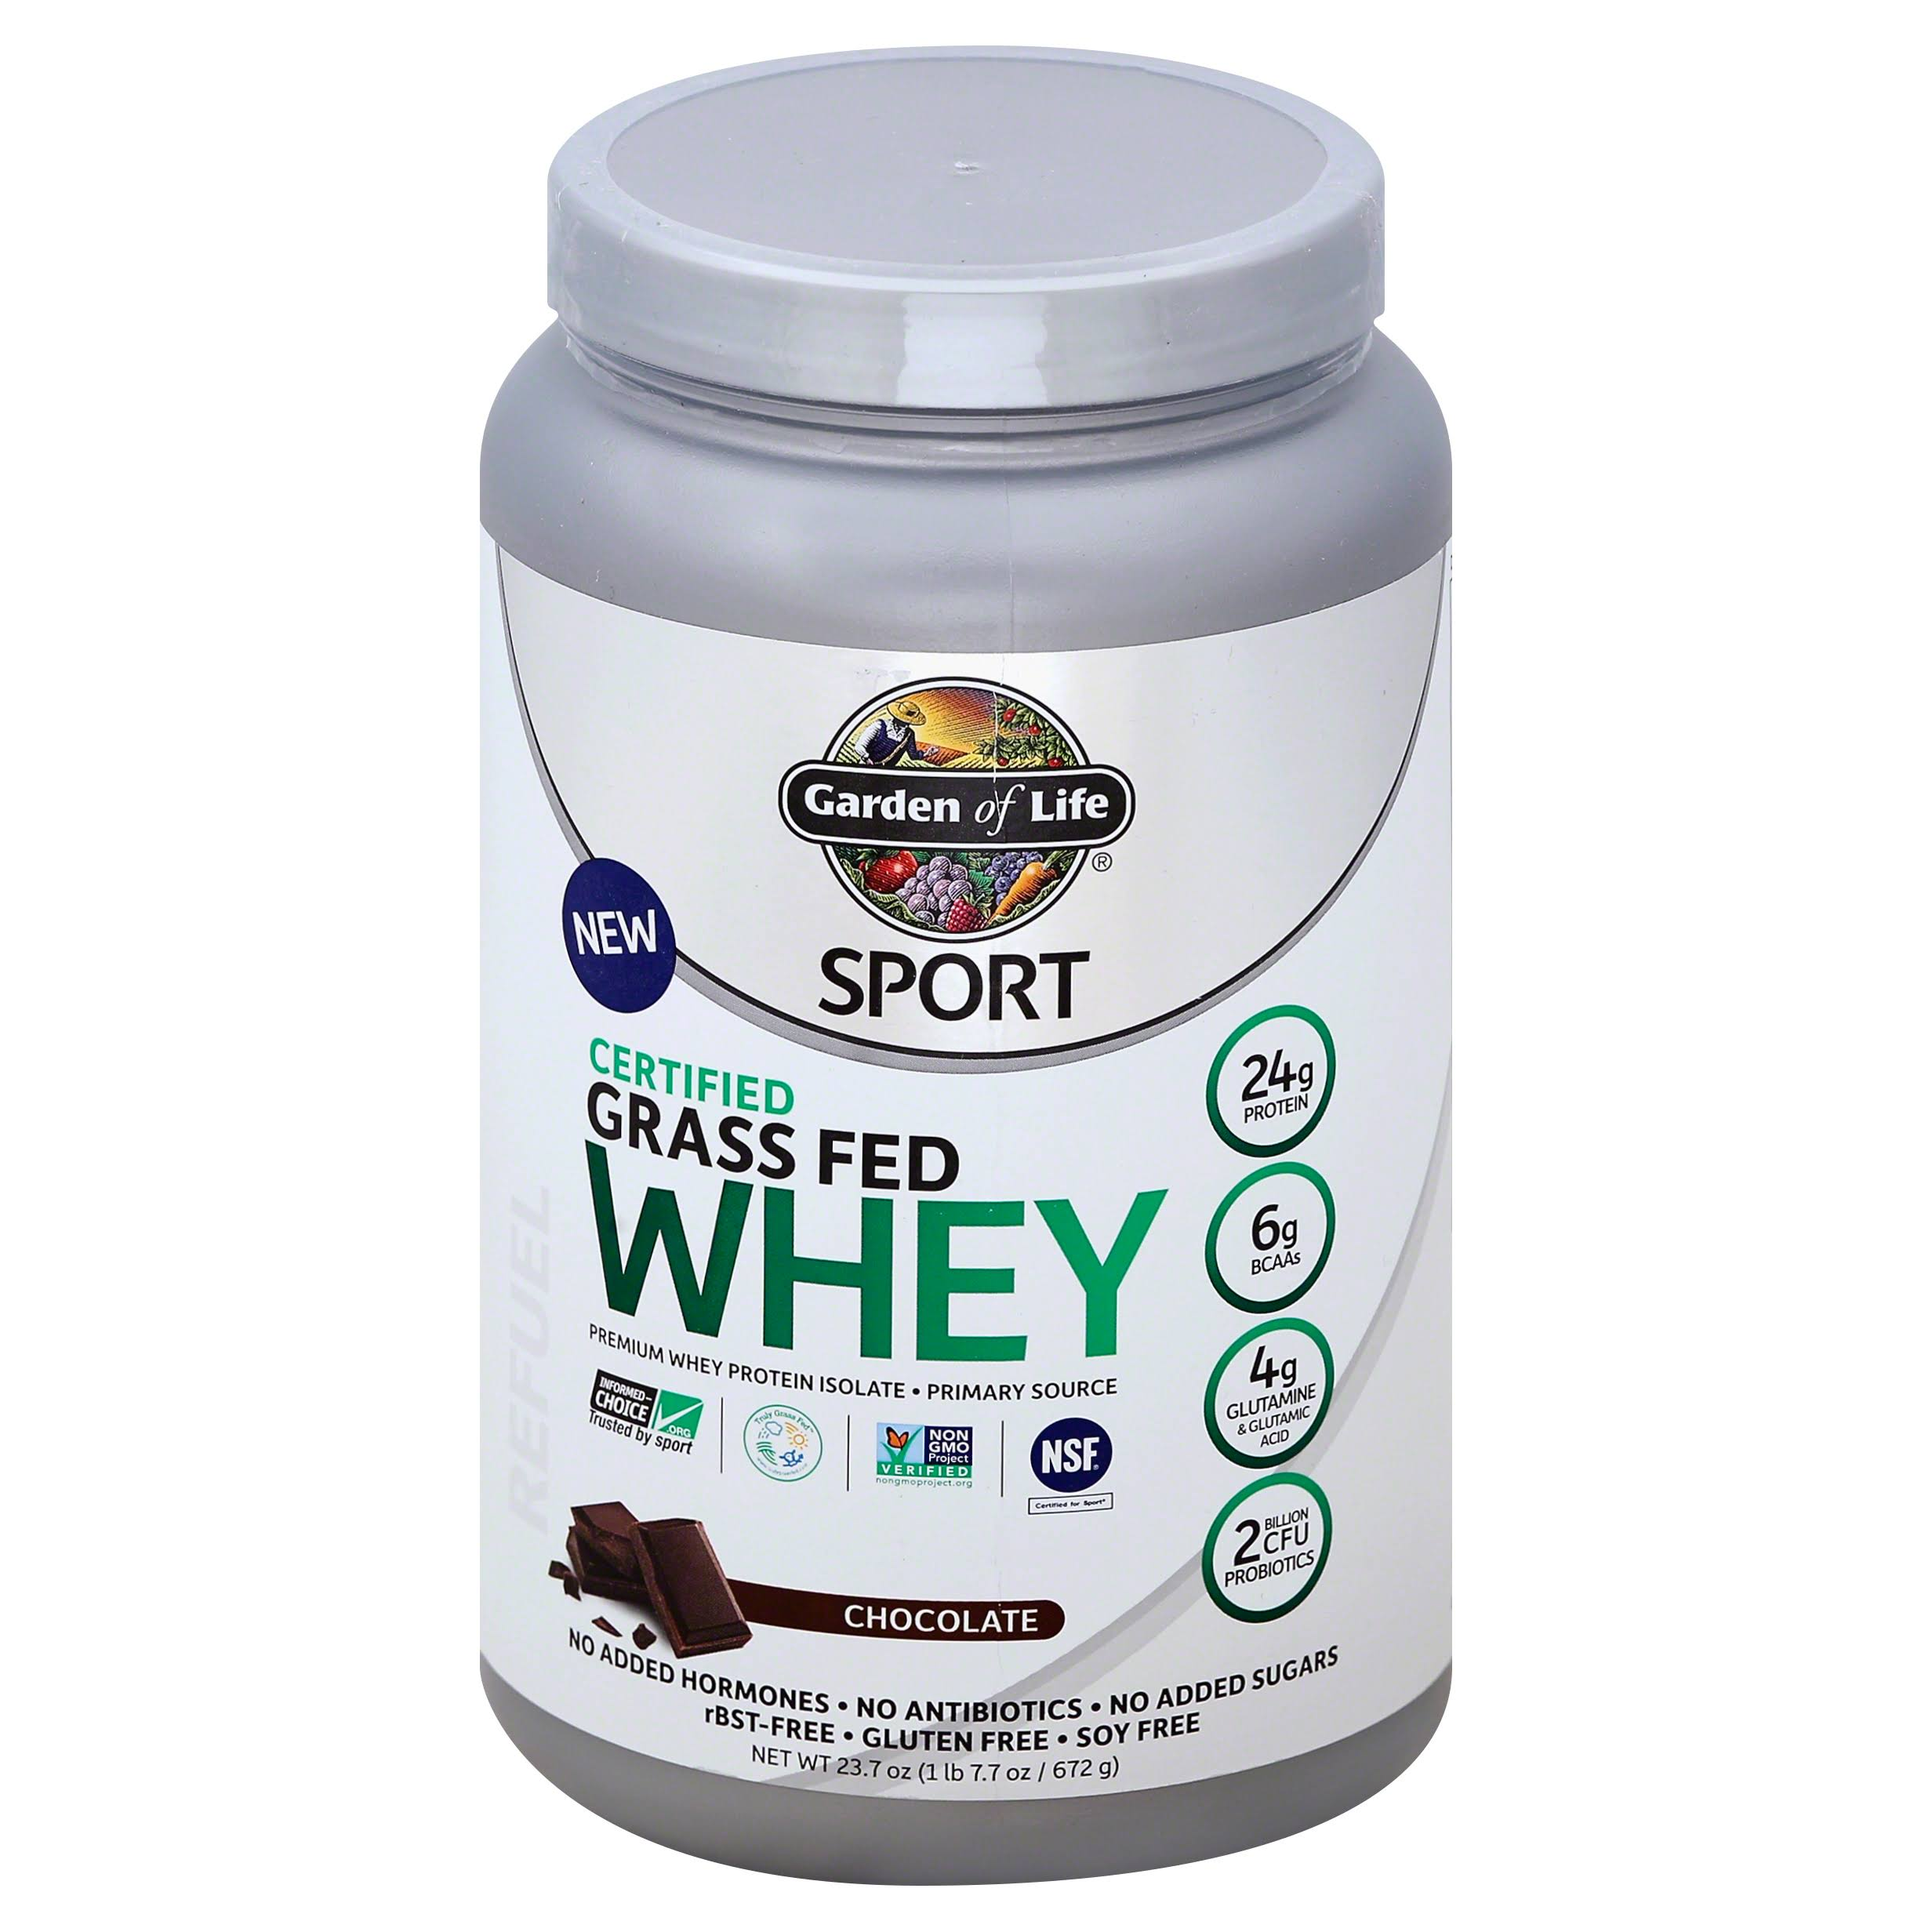 Garden of Life Sport Certified Grass Fed Whey Protein Isolate - Chocolate, 672g